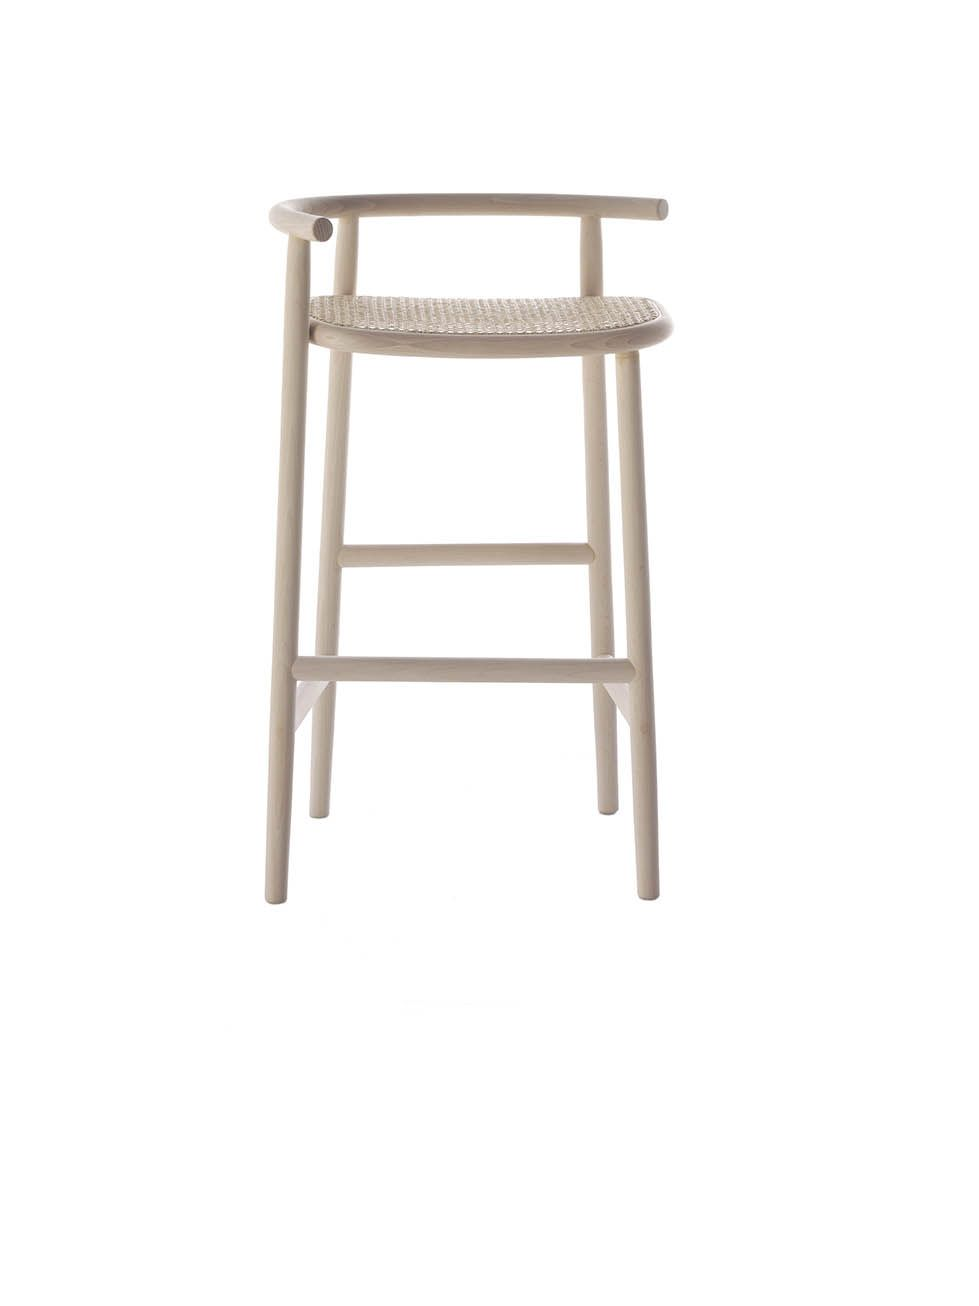 Tabouret De Bar Thonet Single Curve Barstool I Bleached Wood With Caned Seat I Nendo I